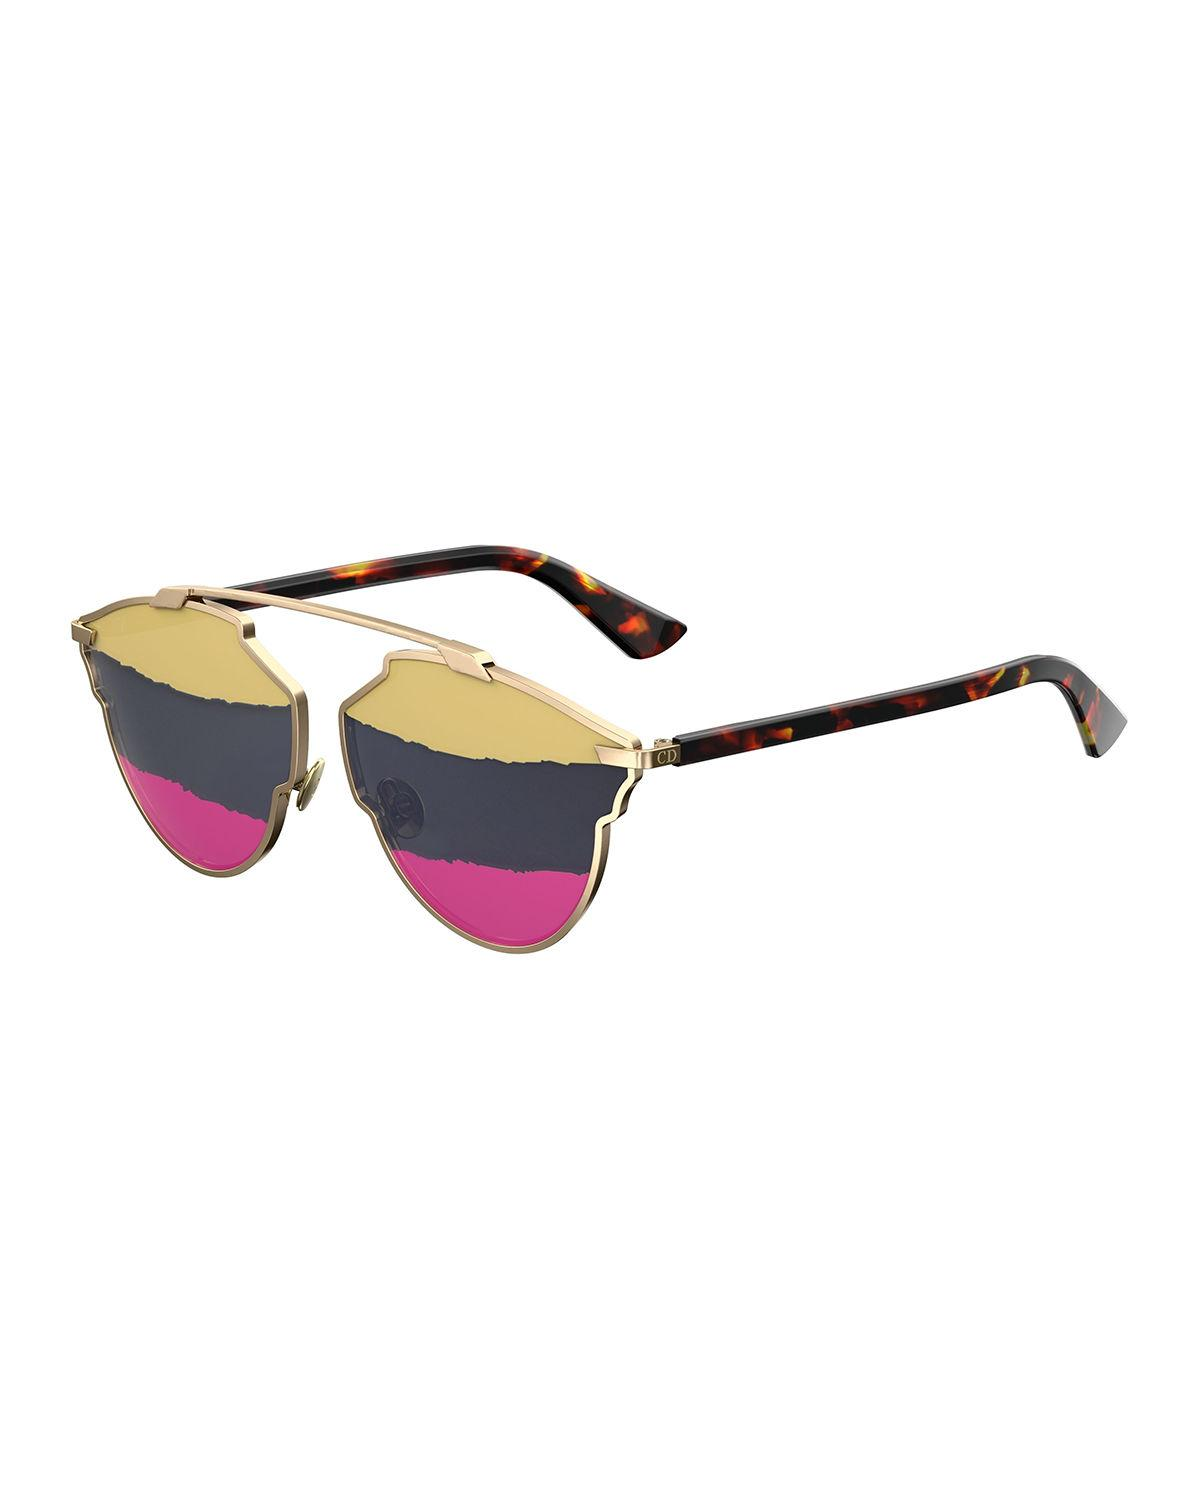 c6fce97bbd9d6 Dior So Real 59Mm Brow Bar Sunglasses - Gold  Pink In Havana-Gold ...